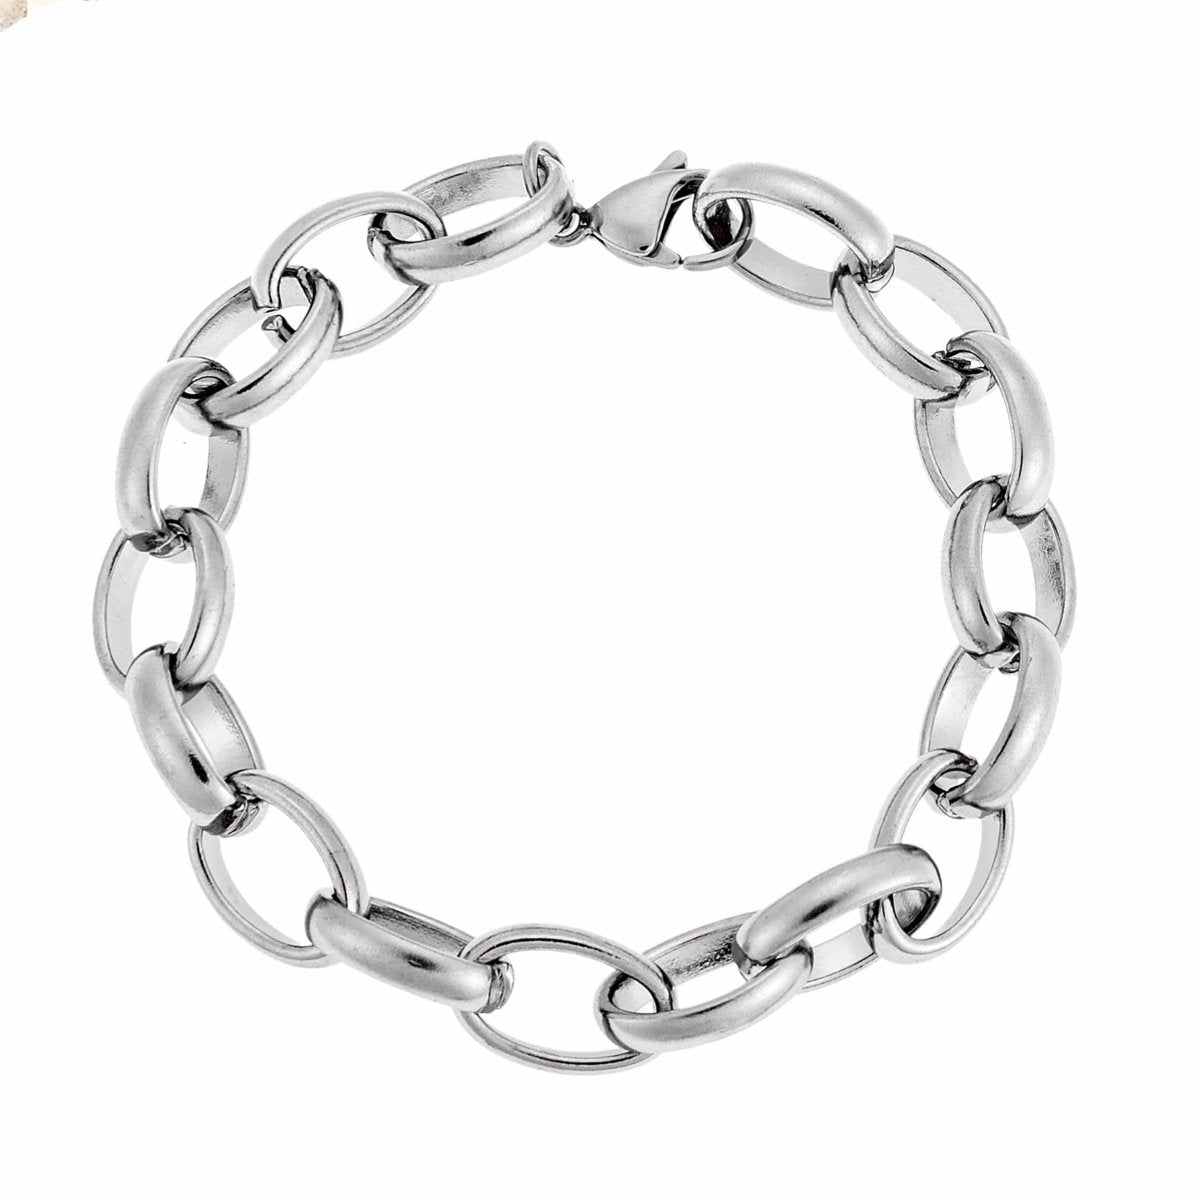 Puppis PUB62618S Steel Bracelet with Rings - Goldy Jewelry Store